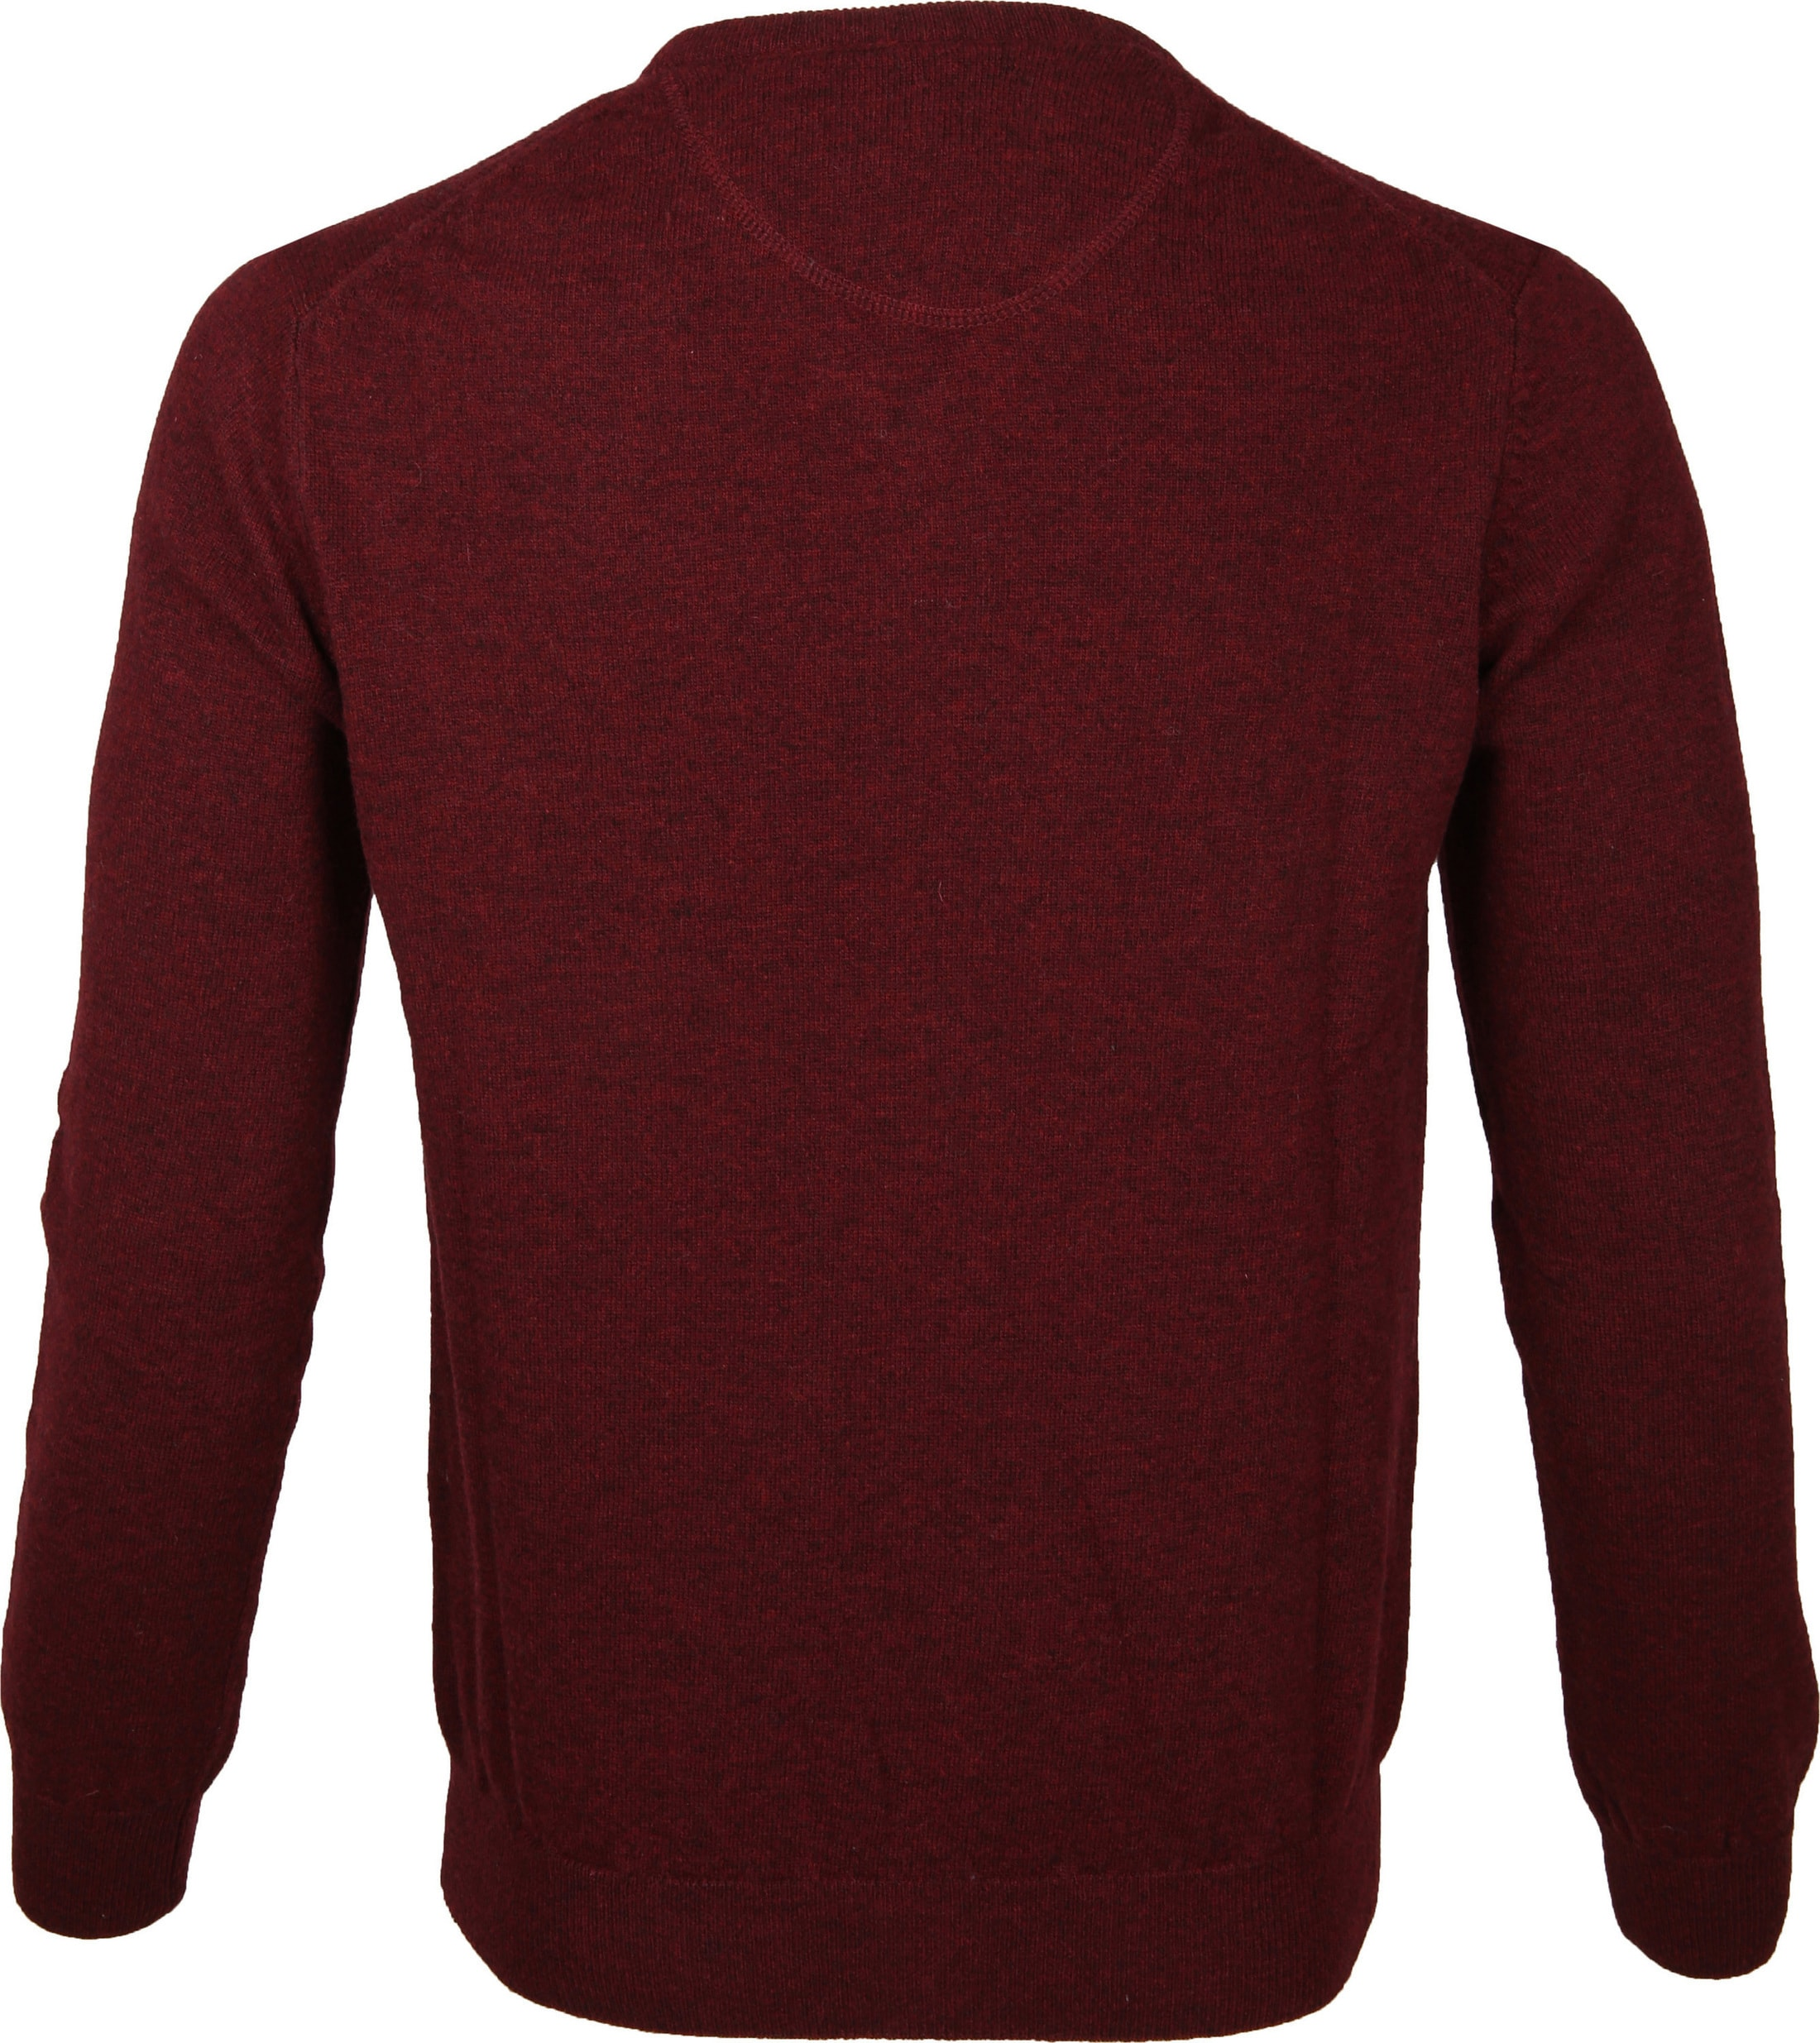 Suitable Pullover Lamswol V-Hals Bordeaux foto 2